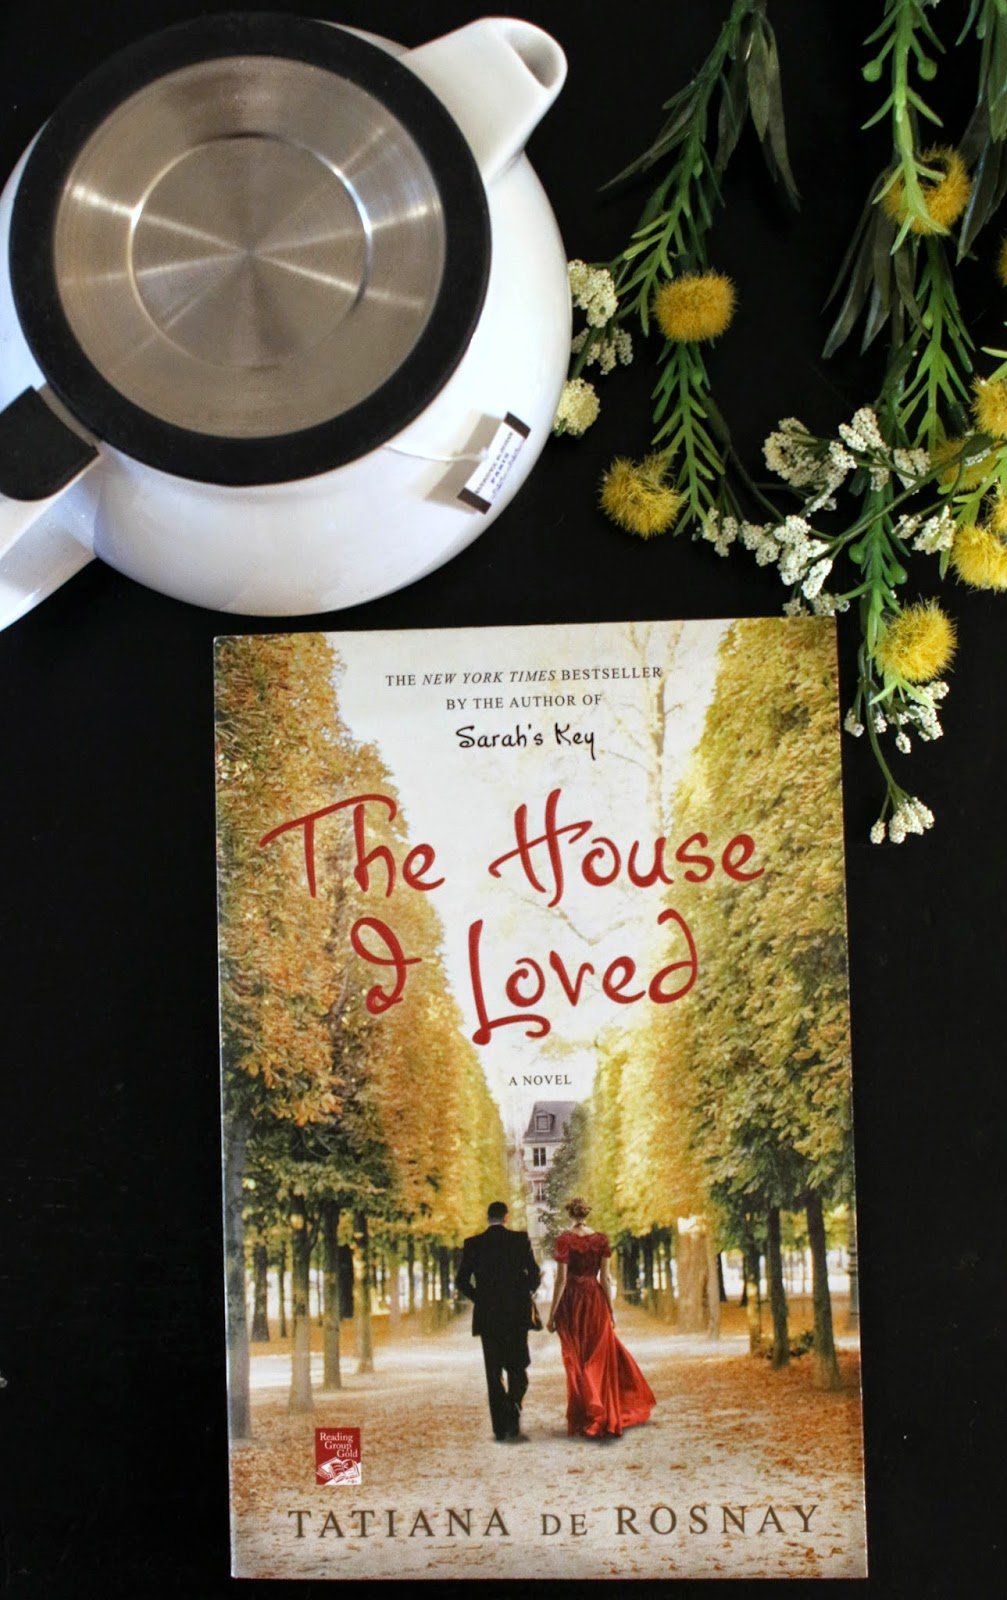 Book Review: The House I Loved by Tatiana de Rosnay